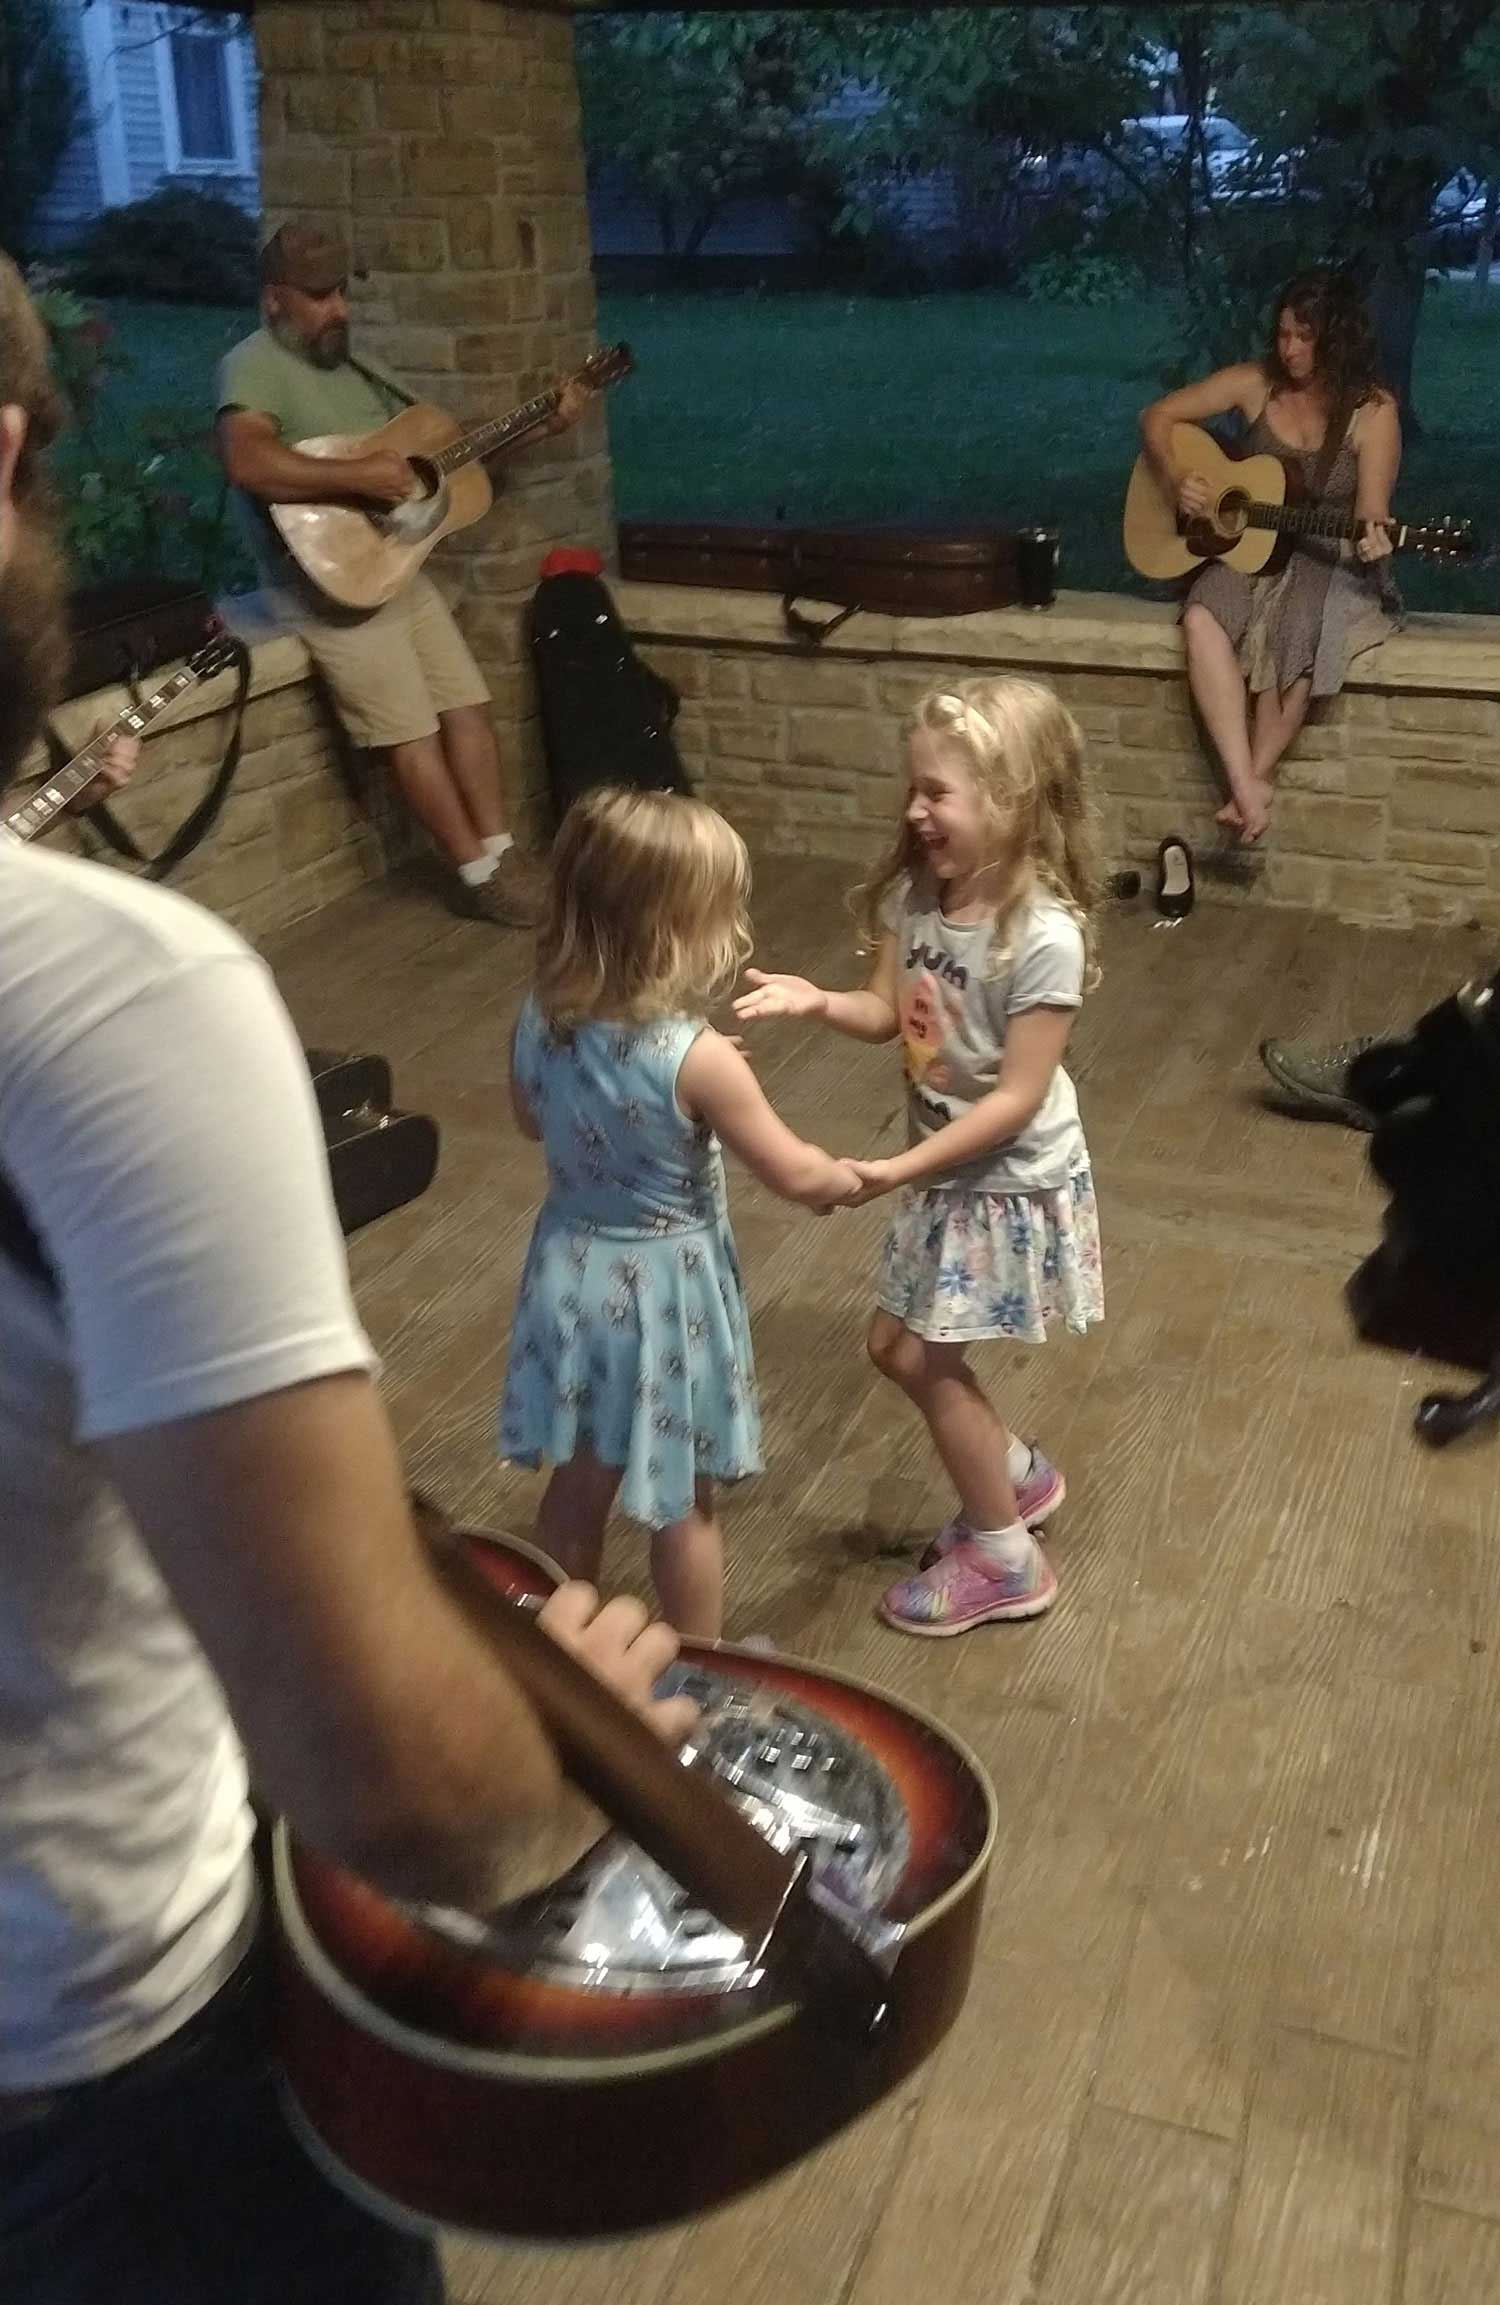 Tuesday night jam sessions at the Village Green Pavilion